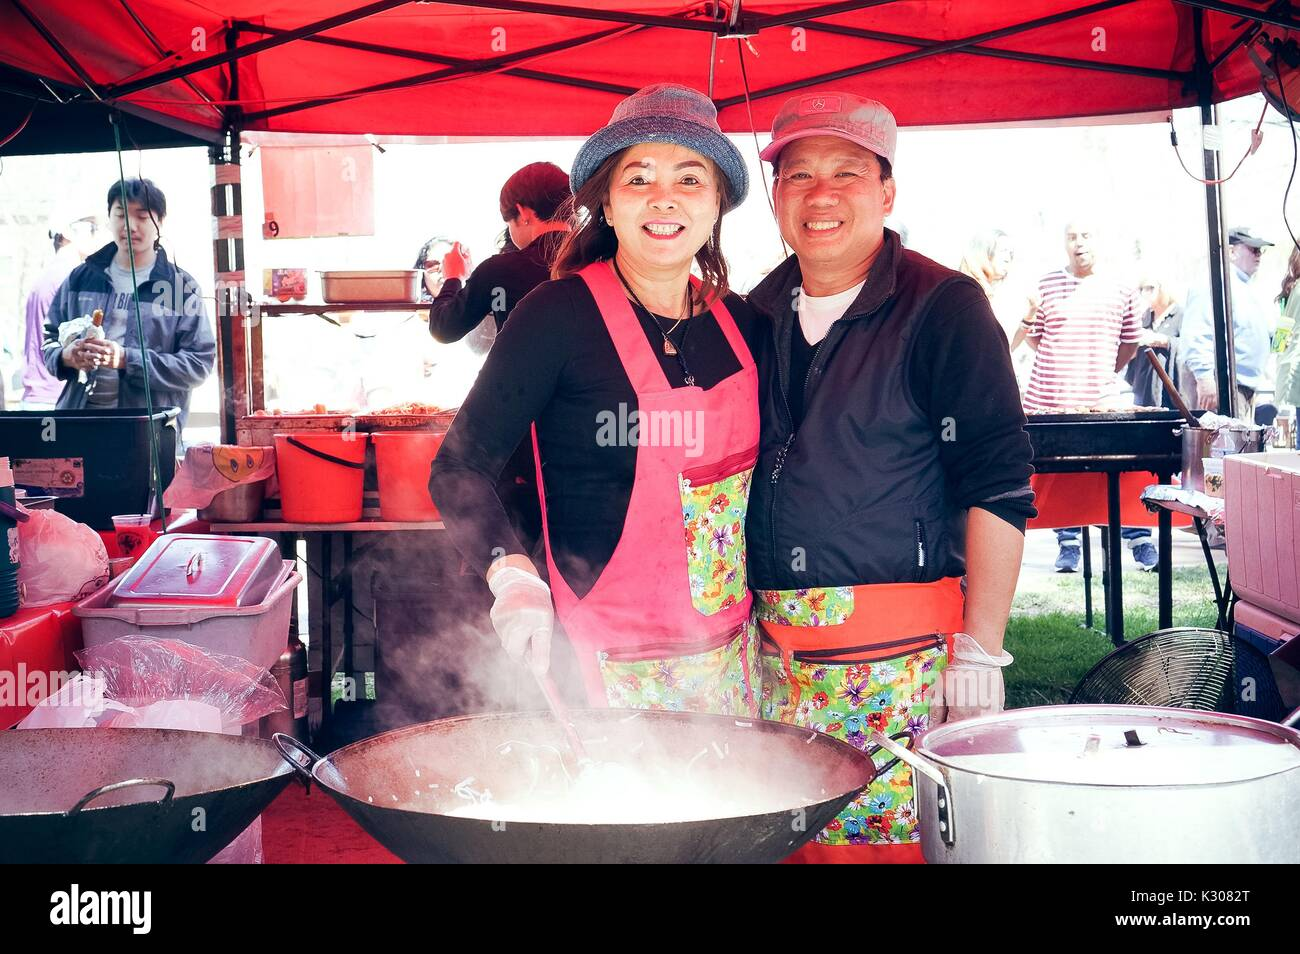 A man and woman wearing hats and aprons smile next to each other for a photo behind three large woks and pots, while the woman stirs the noodles in the wok with a gloved hand, at a food booth during Spring Fair, a student-run spring carnival at Johns Hopkins University, Baltimore, Maryland, April, 2016. Courtesy Eric Chen. - Stock Image